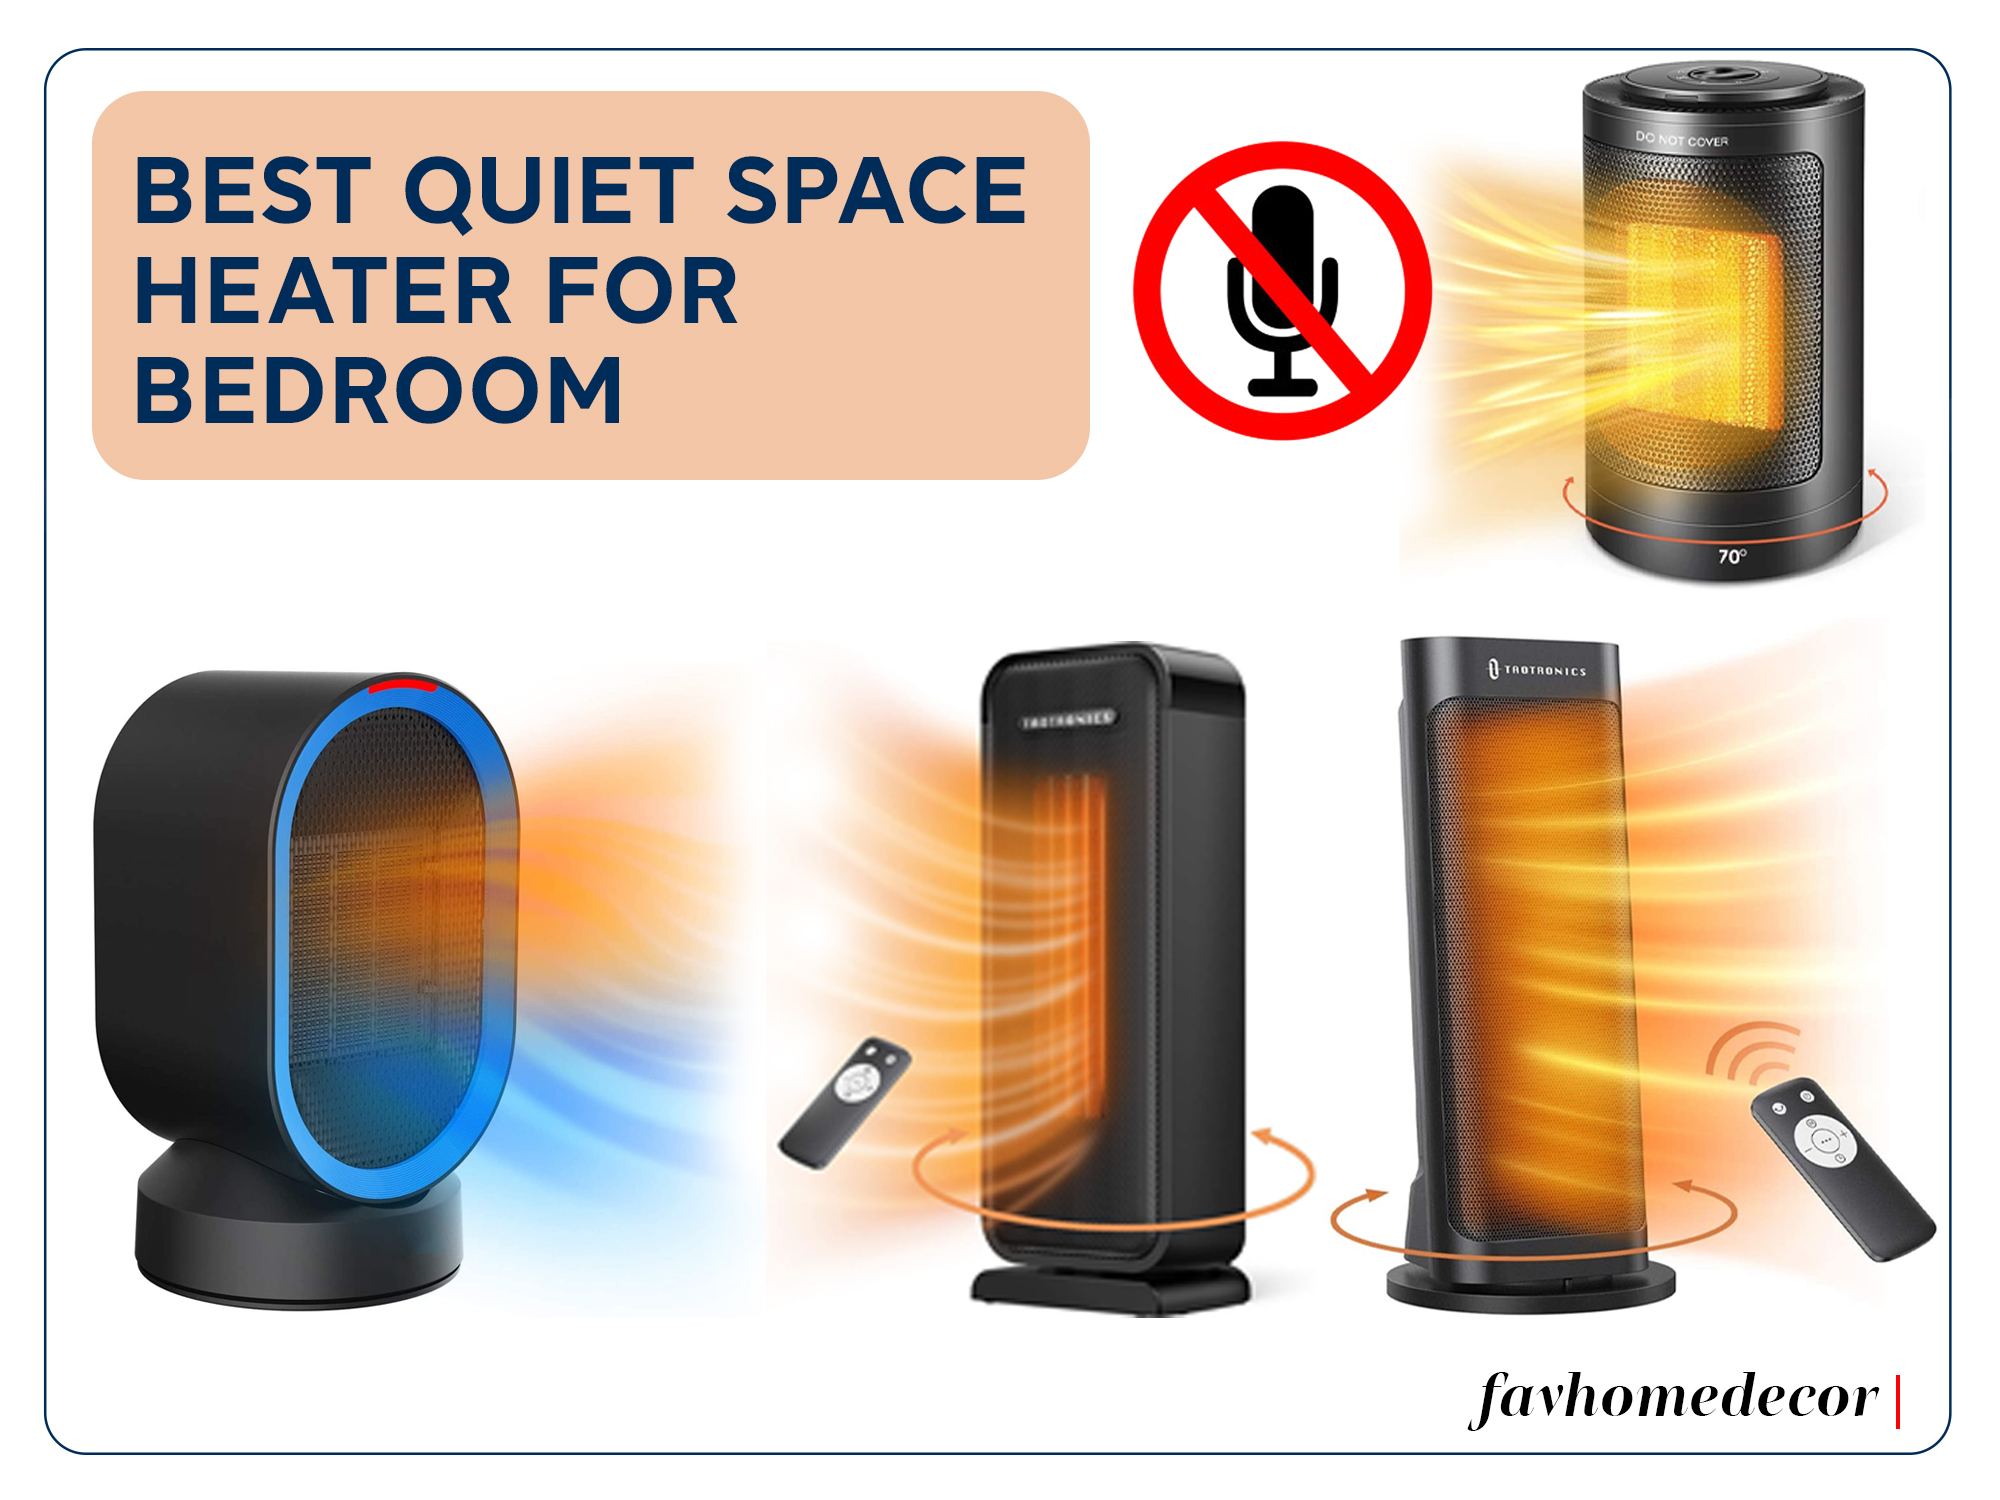 Best Quiet Space Heater For Bedroom